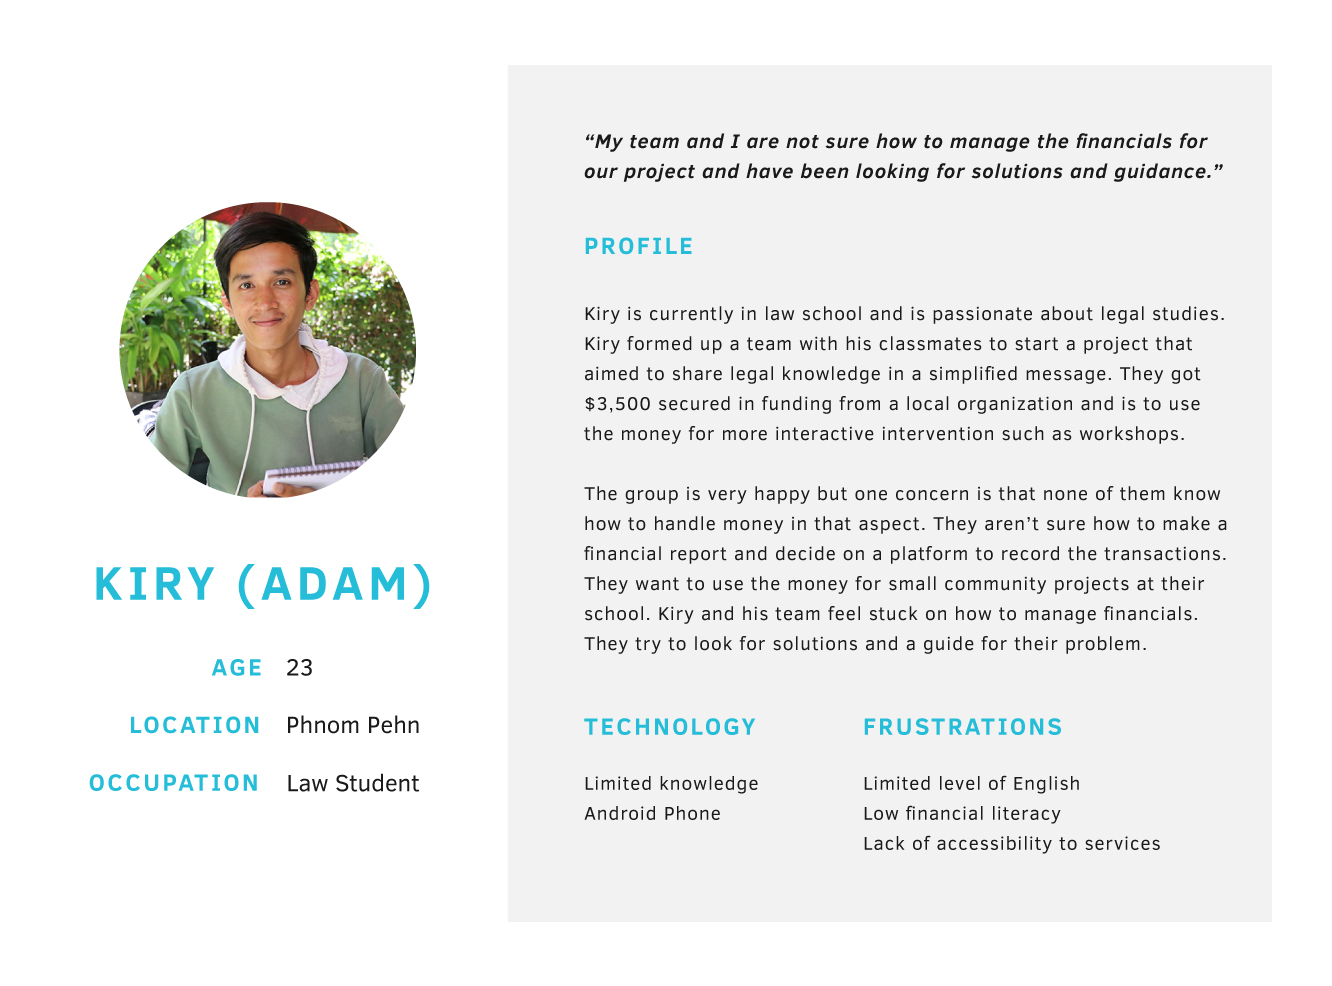 Our persona, Kiry (Adam)